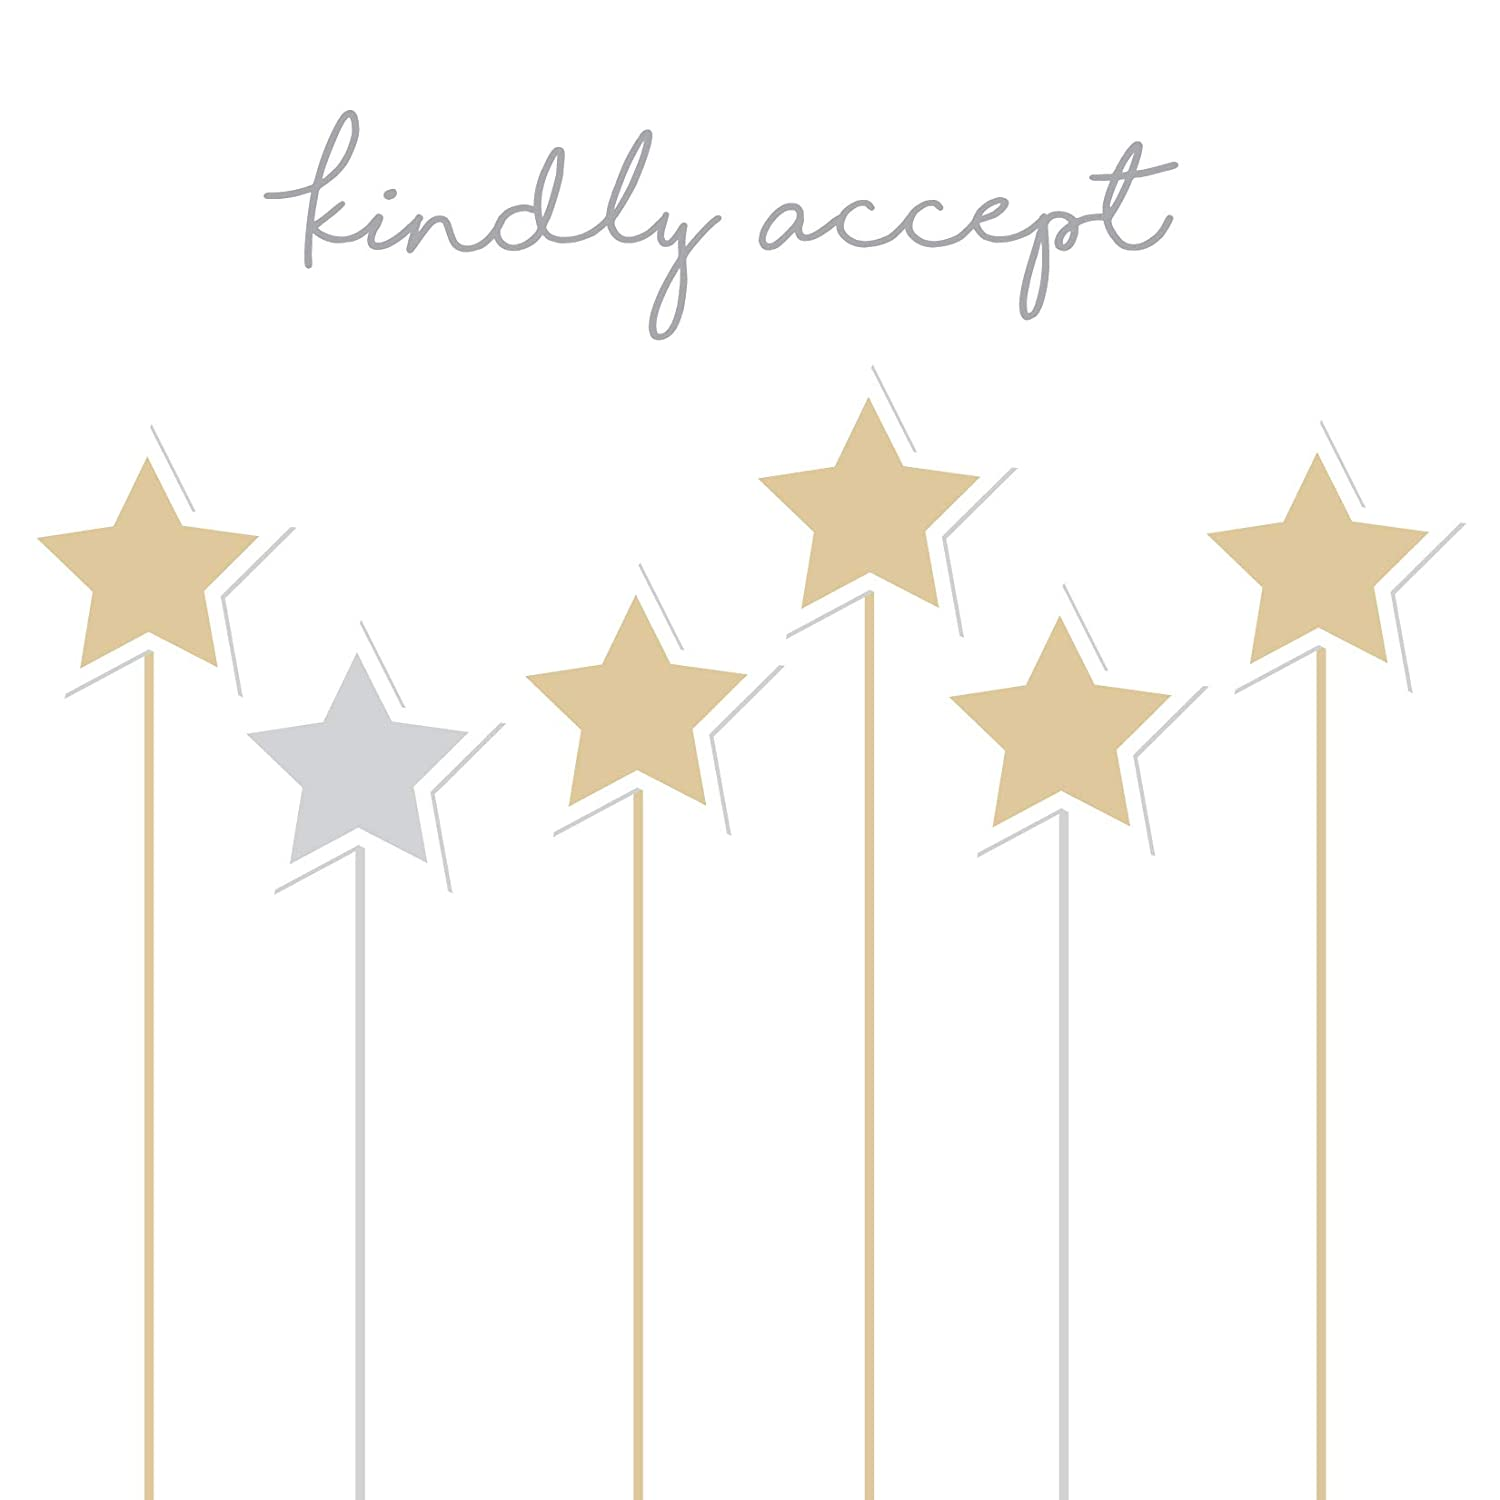 Kindly Accept Card - Acceptance Card - Stars Design by Jonathan Glick Jonathan Glick Designs